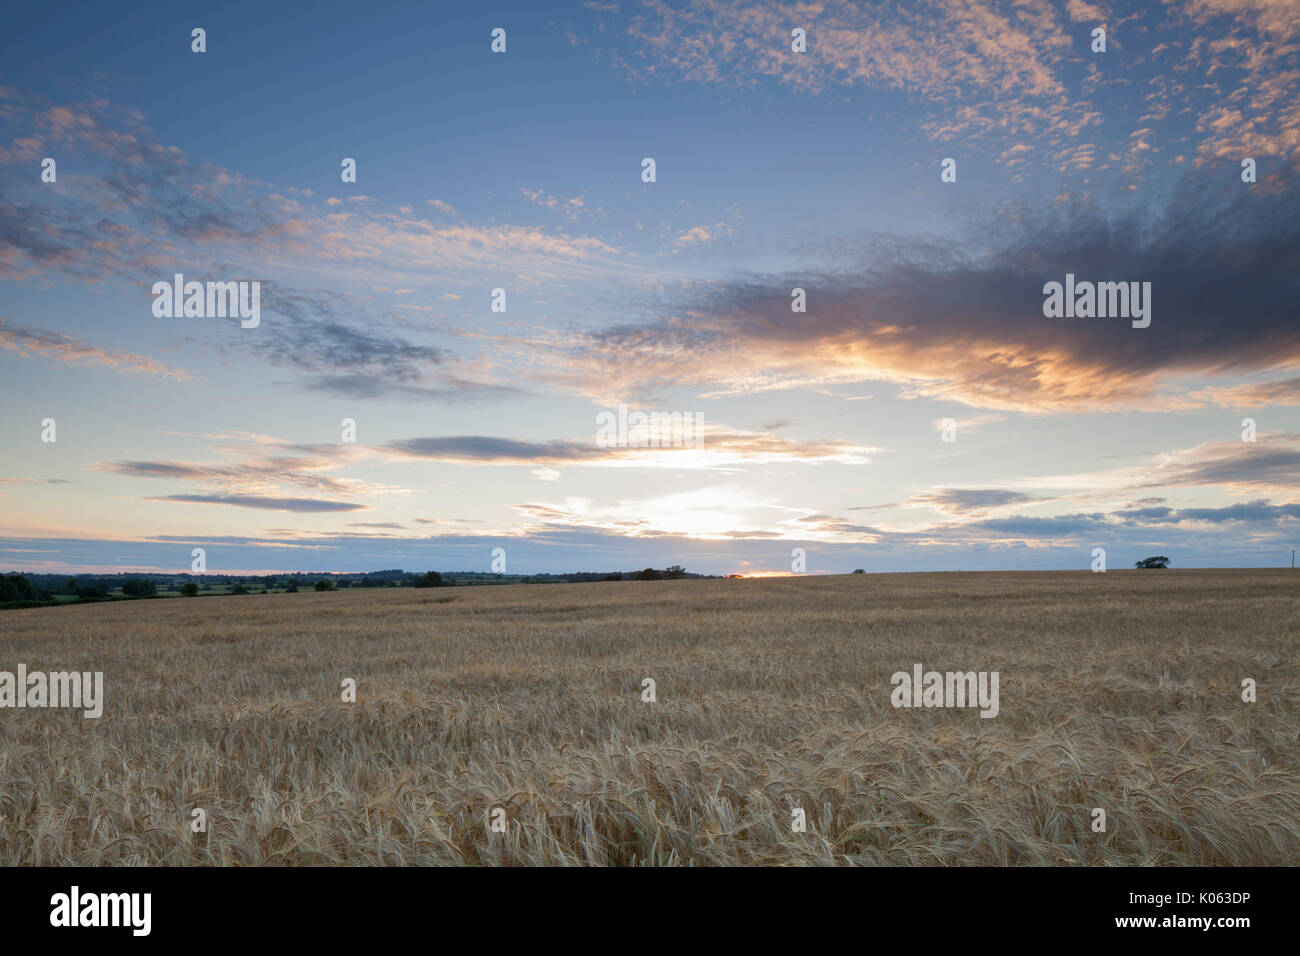 A field of ripened barley near sunset on a July evening at Church Brampton in Northamptonshire, England. - Stock Image